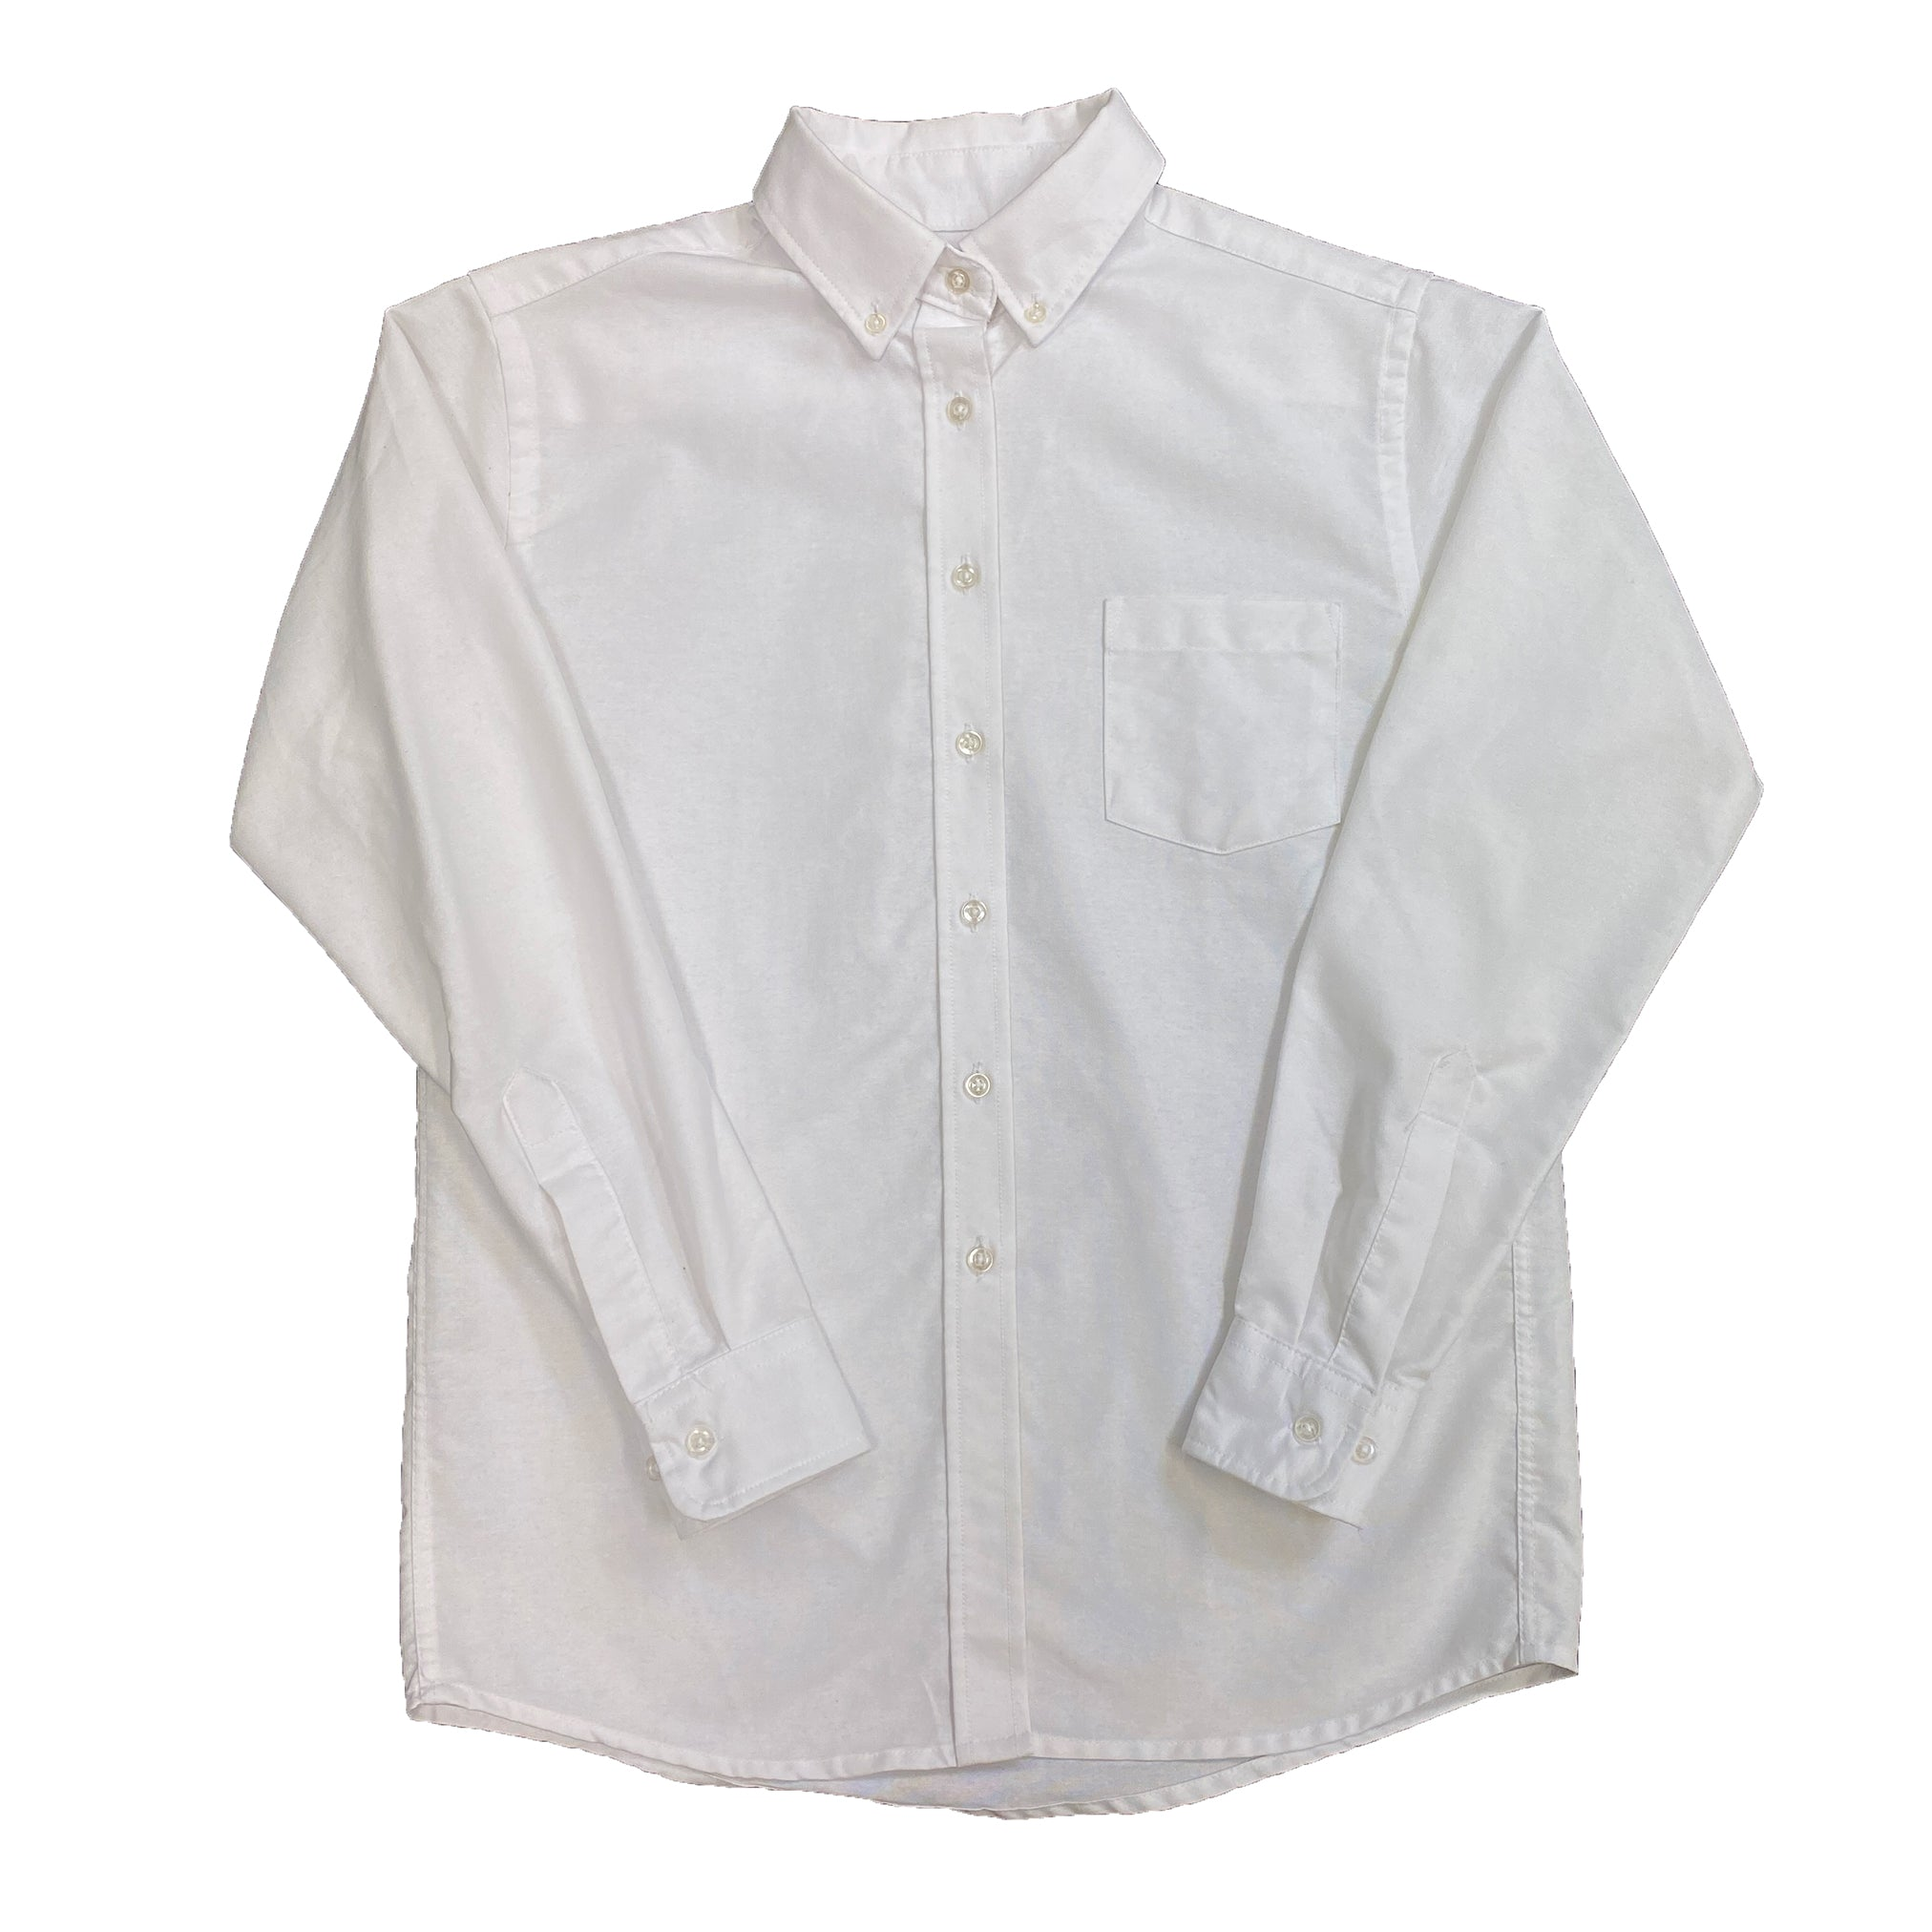 White Button-up shirt by Miss Tulane